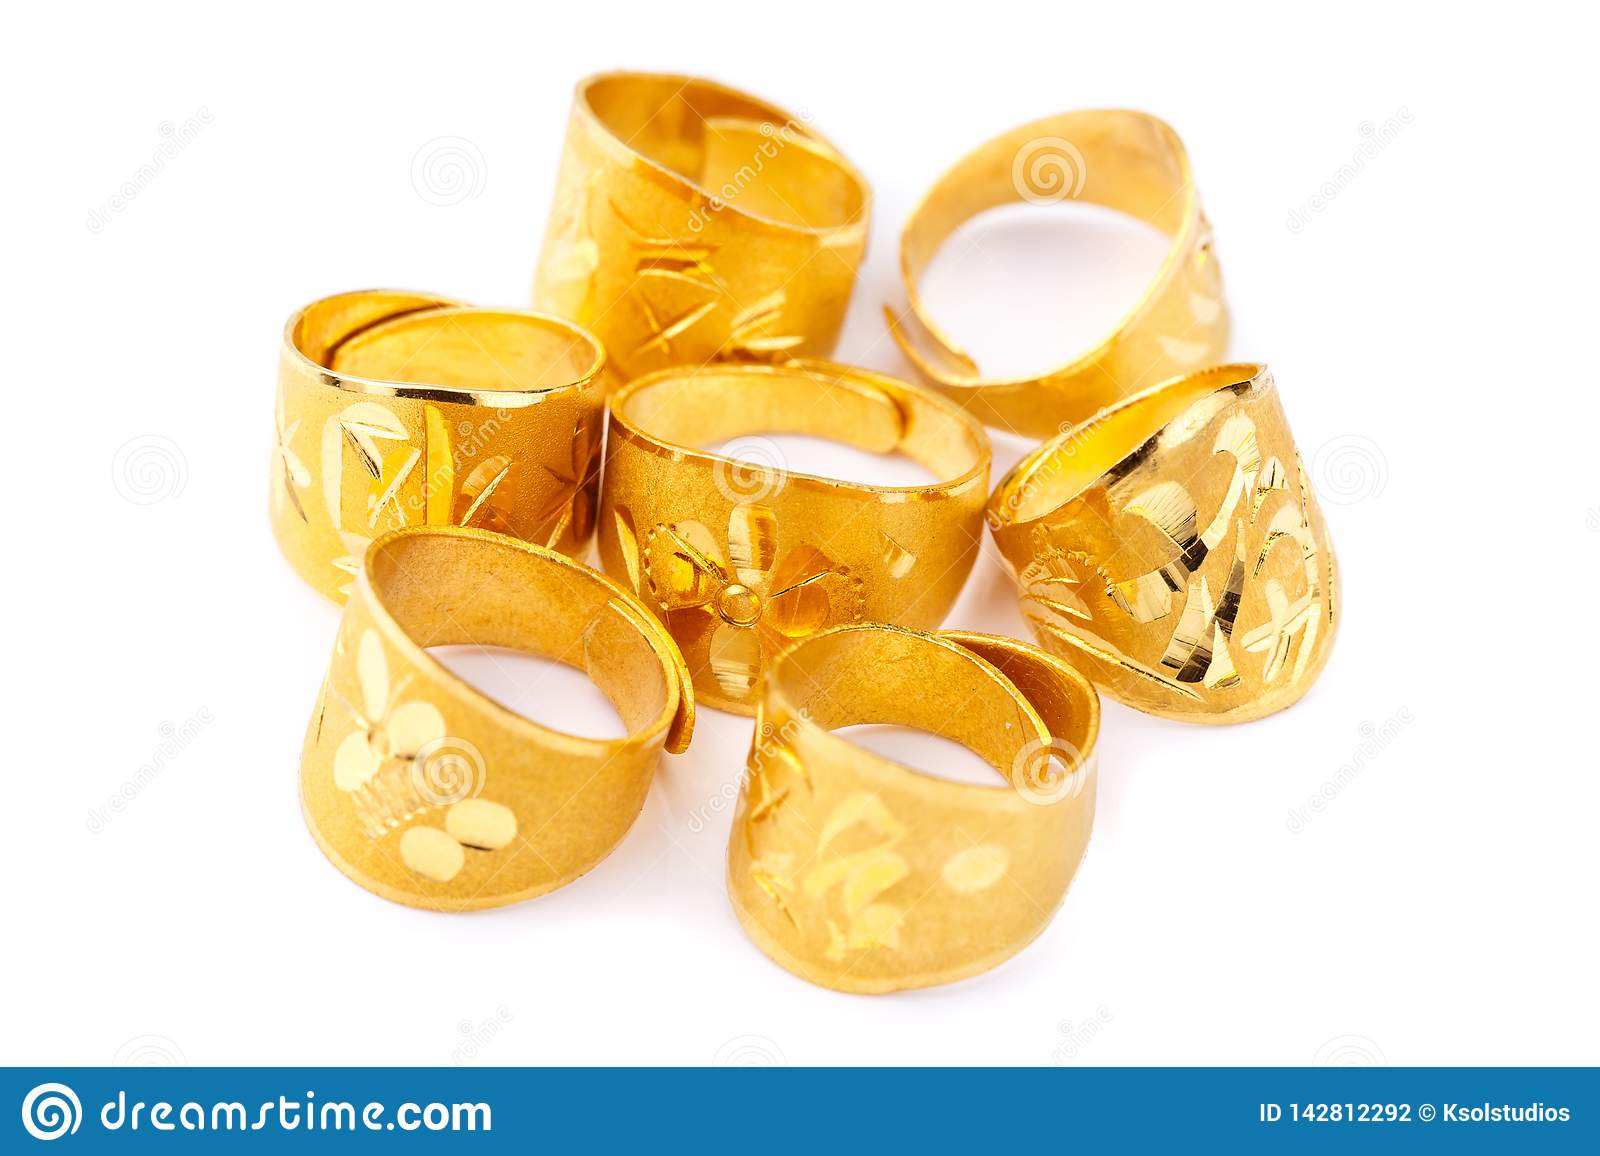 Pure solid gold rings on white background